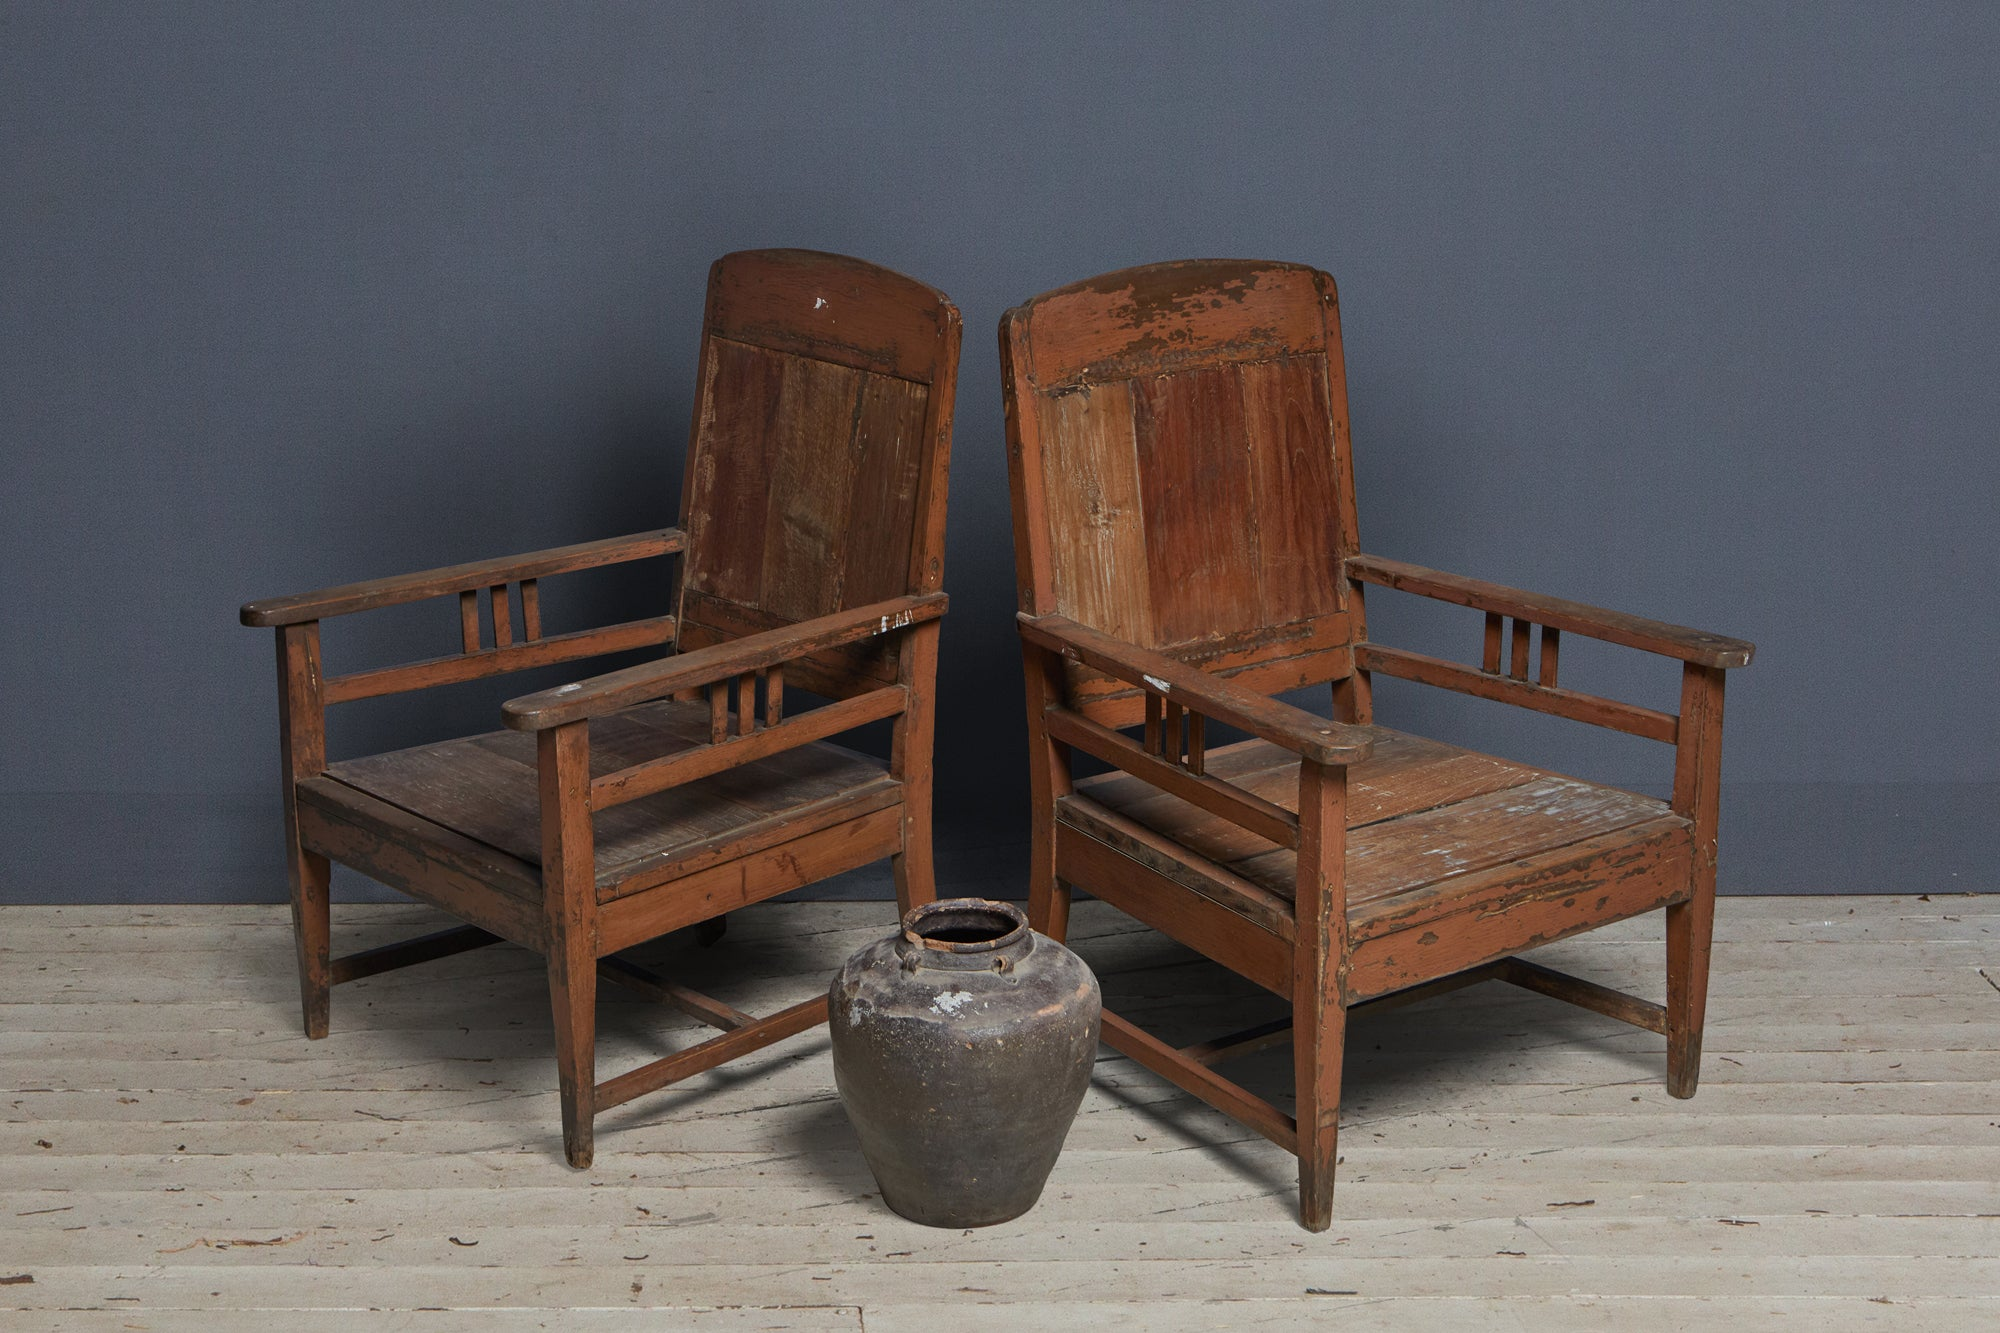 Pair of 1930's Teak Dutch Colonial Teak Lounge Chairs from Jakarta